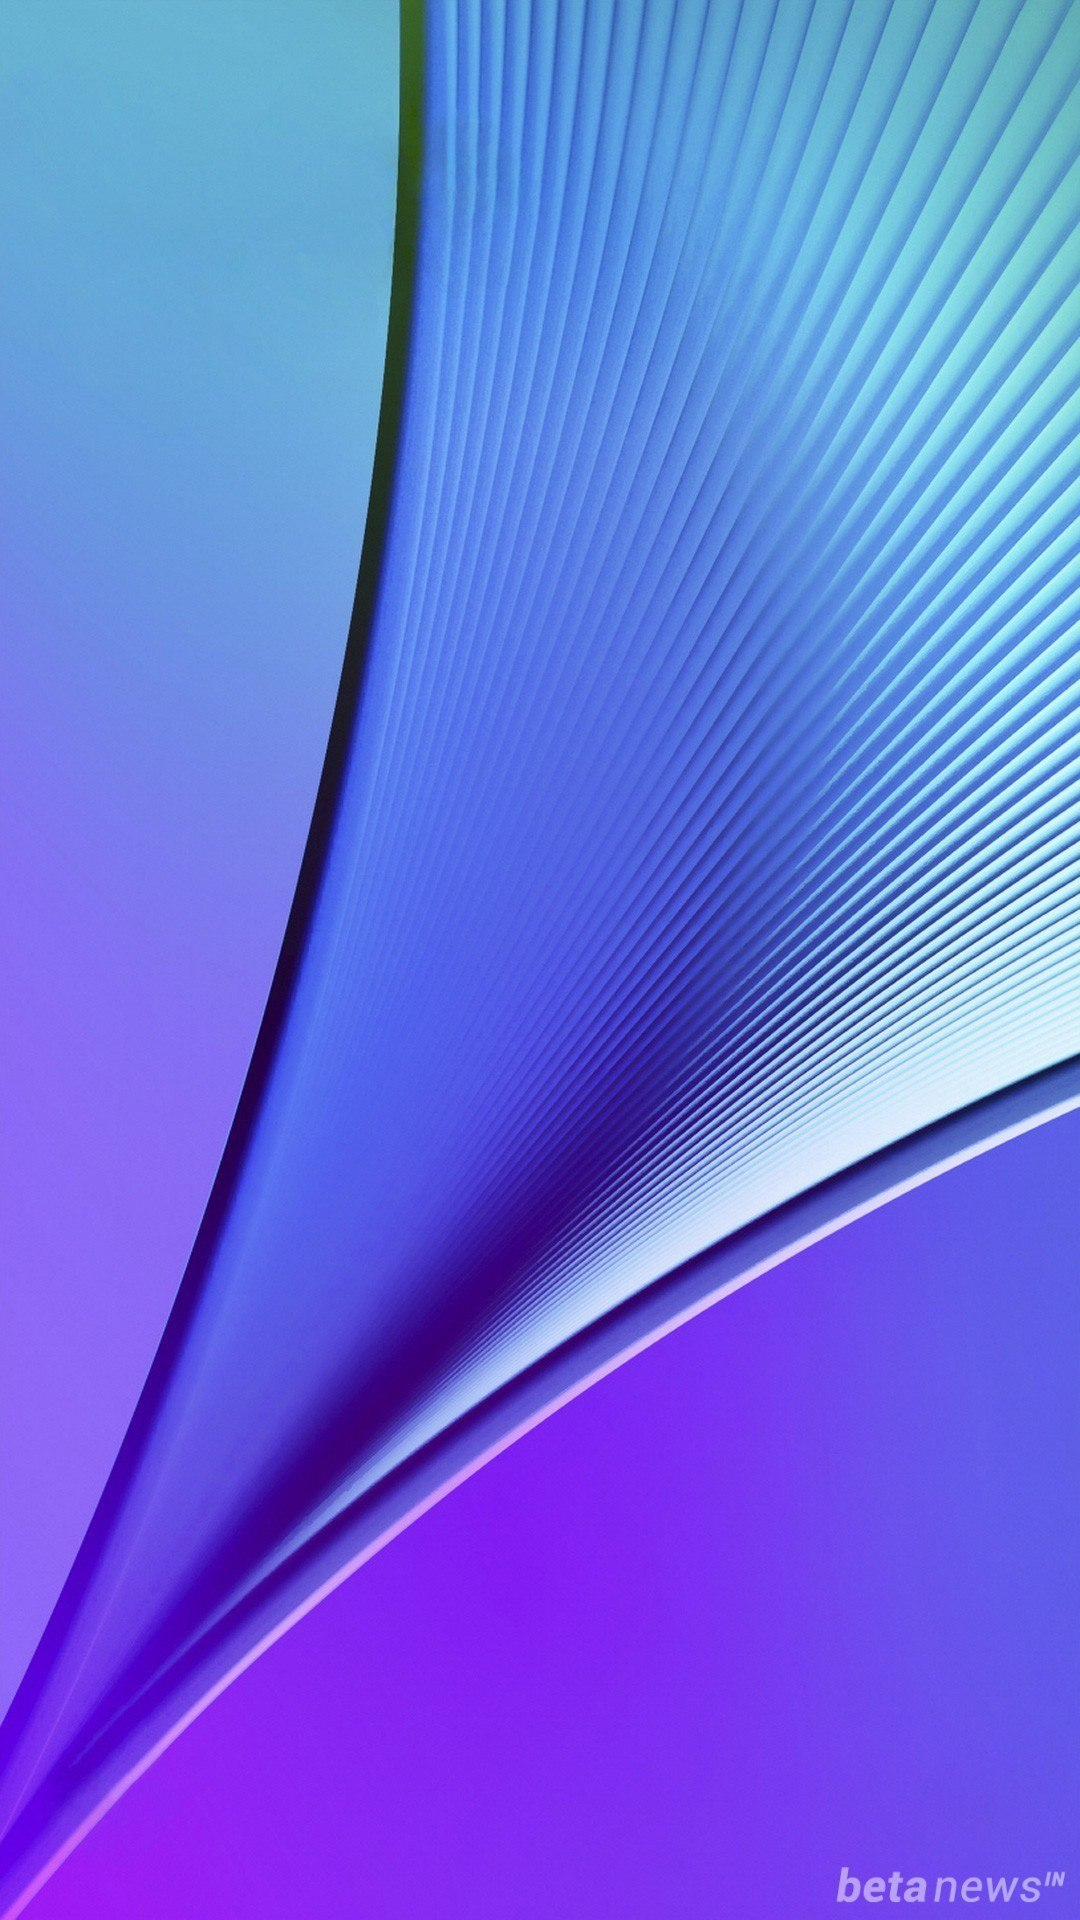 Samsung Galaxy Note 5 Stock Wallpapers Download Quad HD 1080x1920